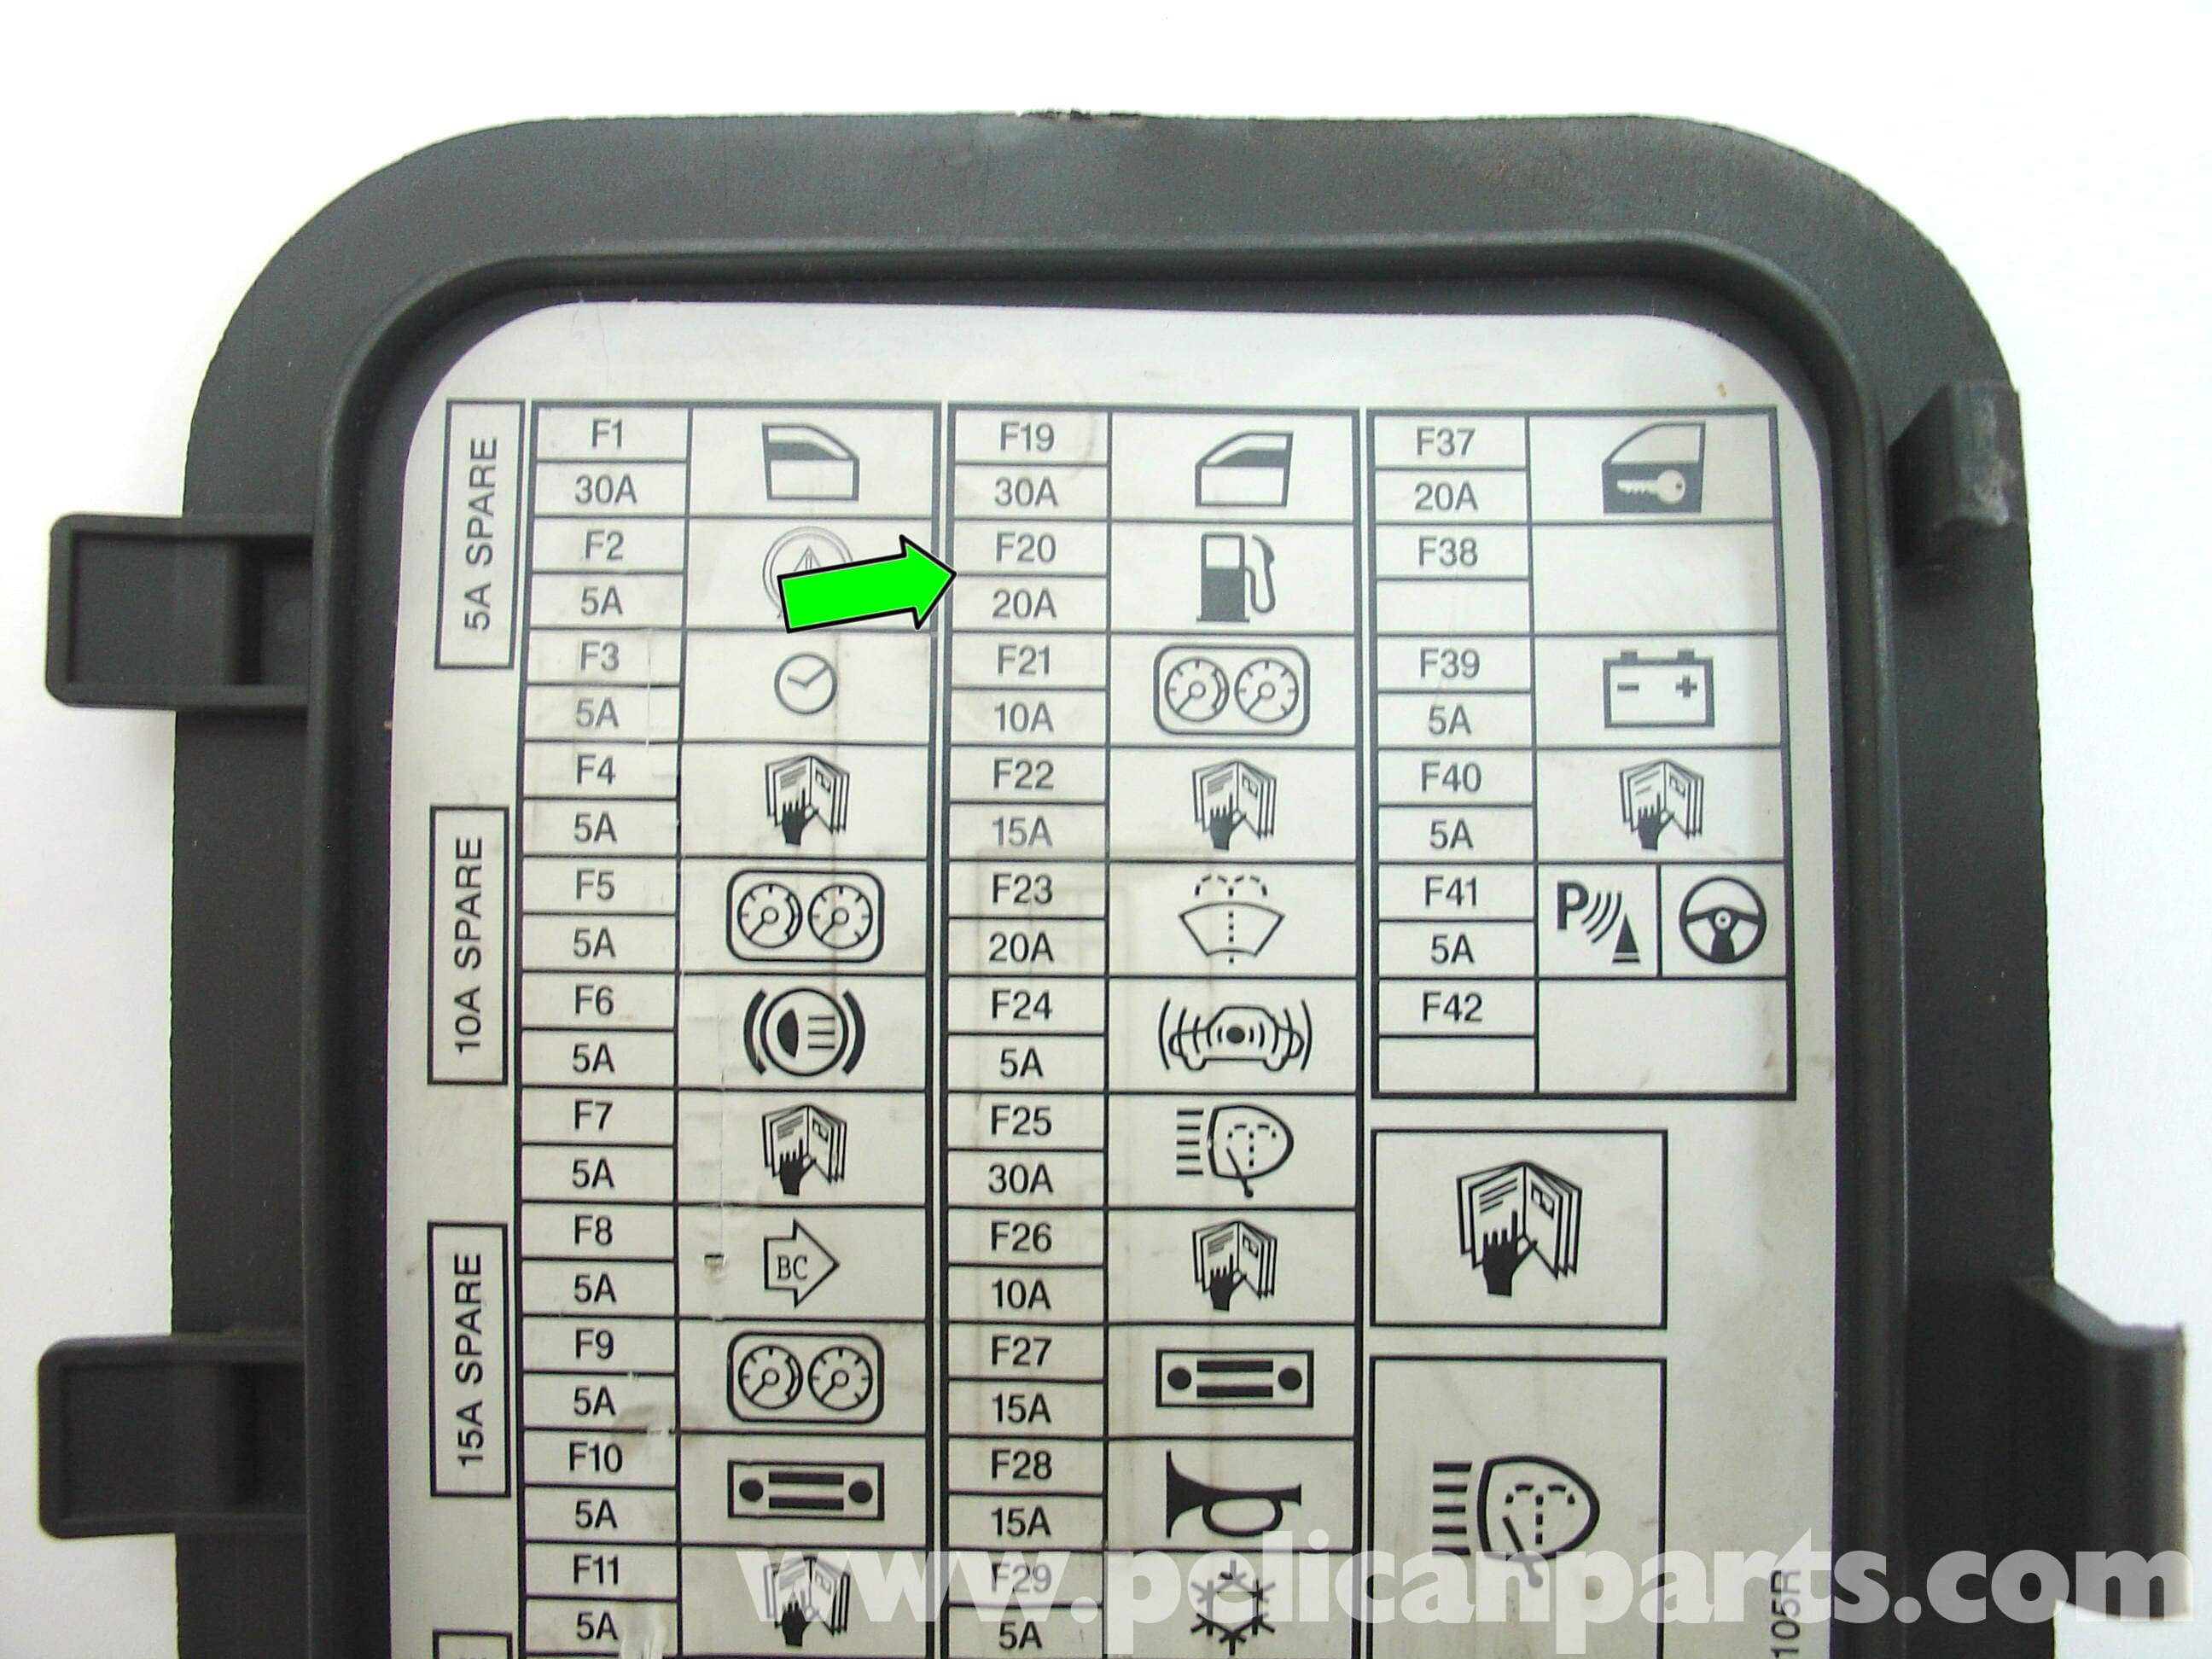 2007 Infiniti G35 Fuse Box Diagram Wiring Library Location Mini Cooper Simple Lincoln Mkz